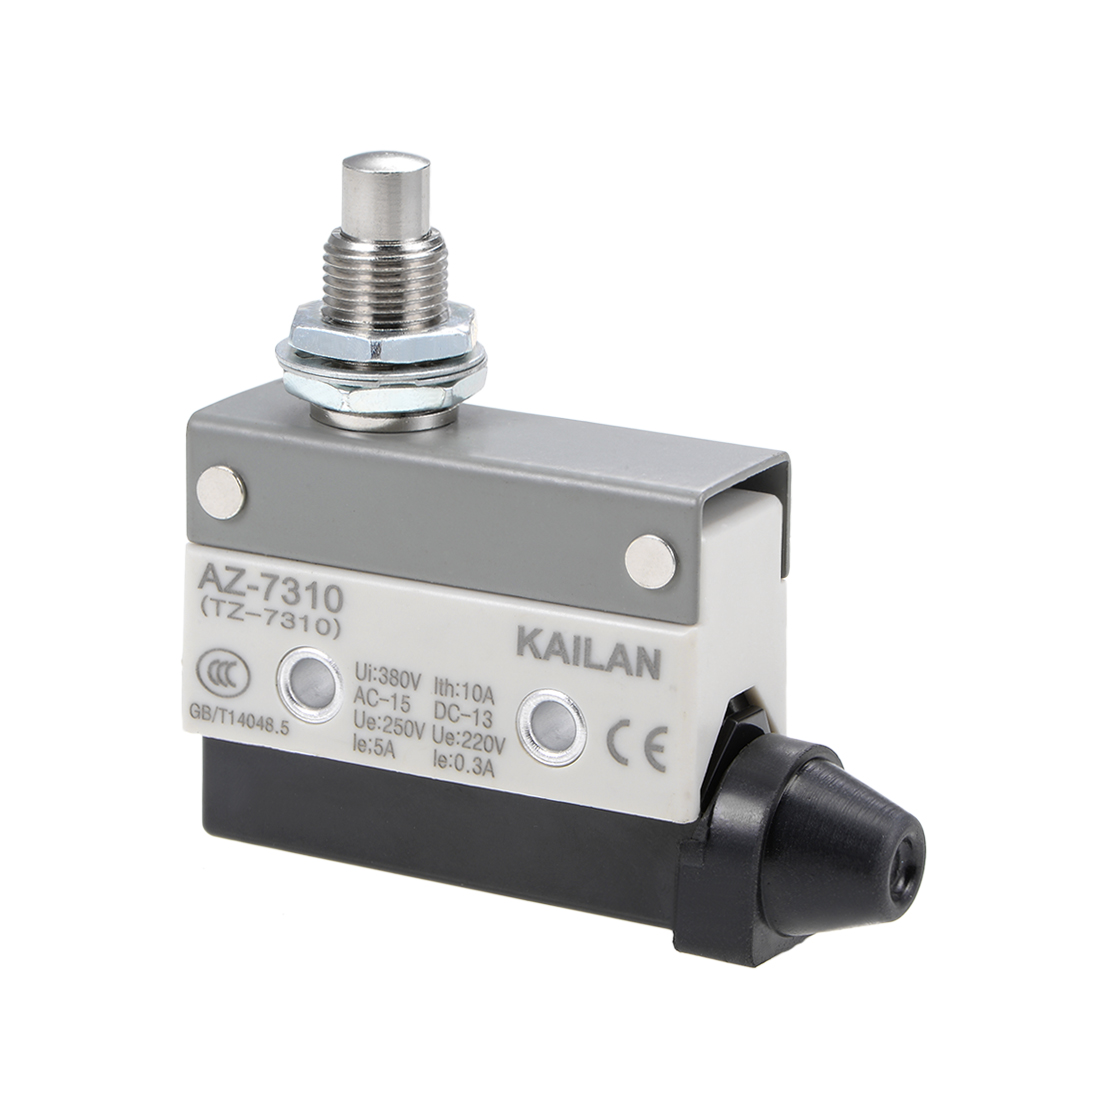 AZ-7310 Limit Switch, TZ-7310 Push Plunger Micro Momentary Switches 1NC+1NO